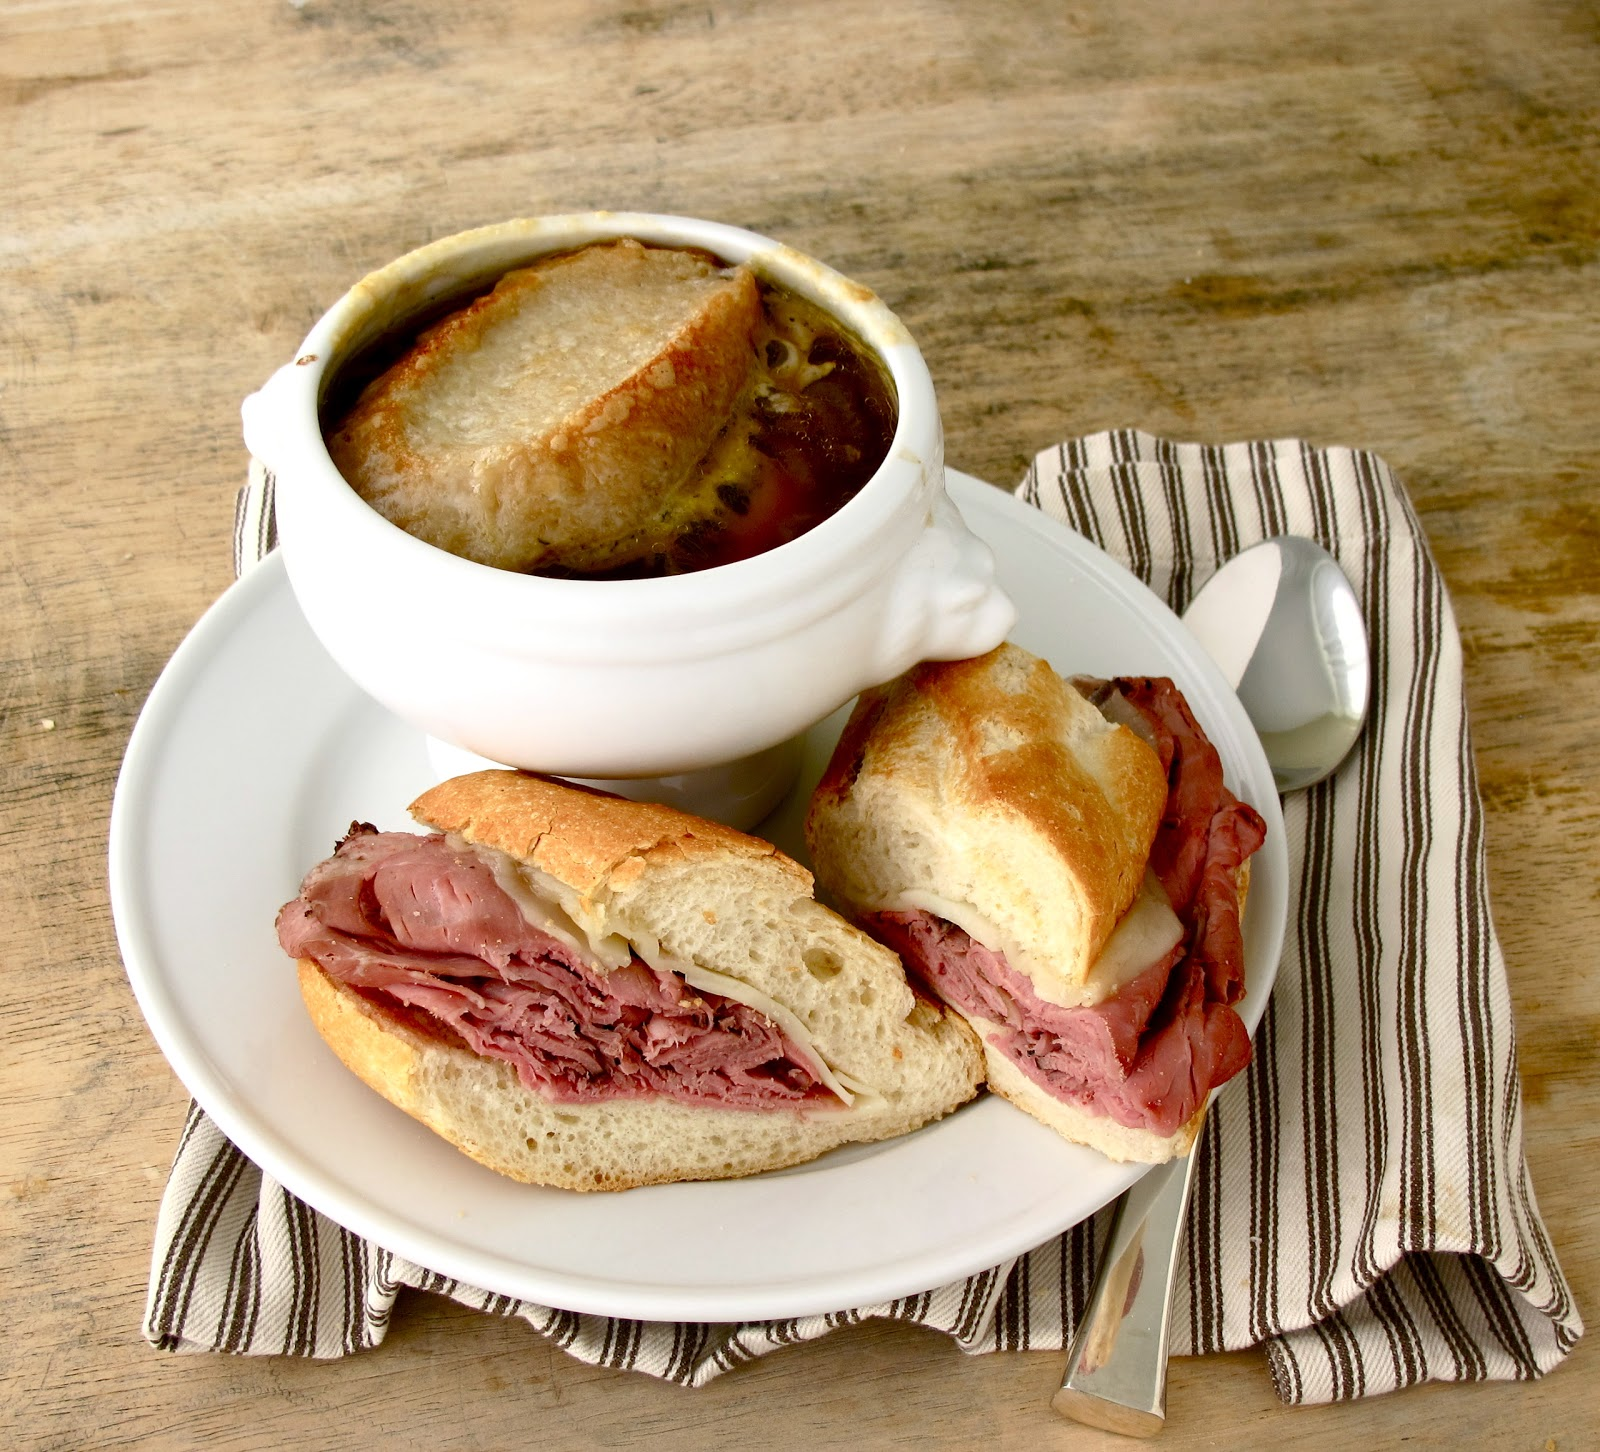 ... Steffens Hobick: French Dip Sandwiches with French Onion Soup | Recipe